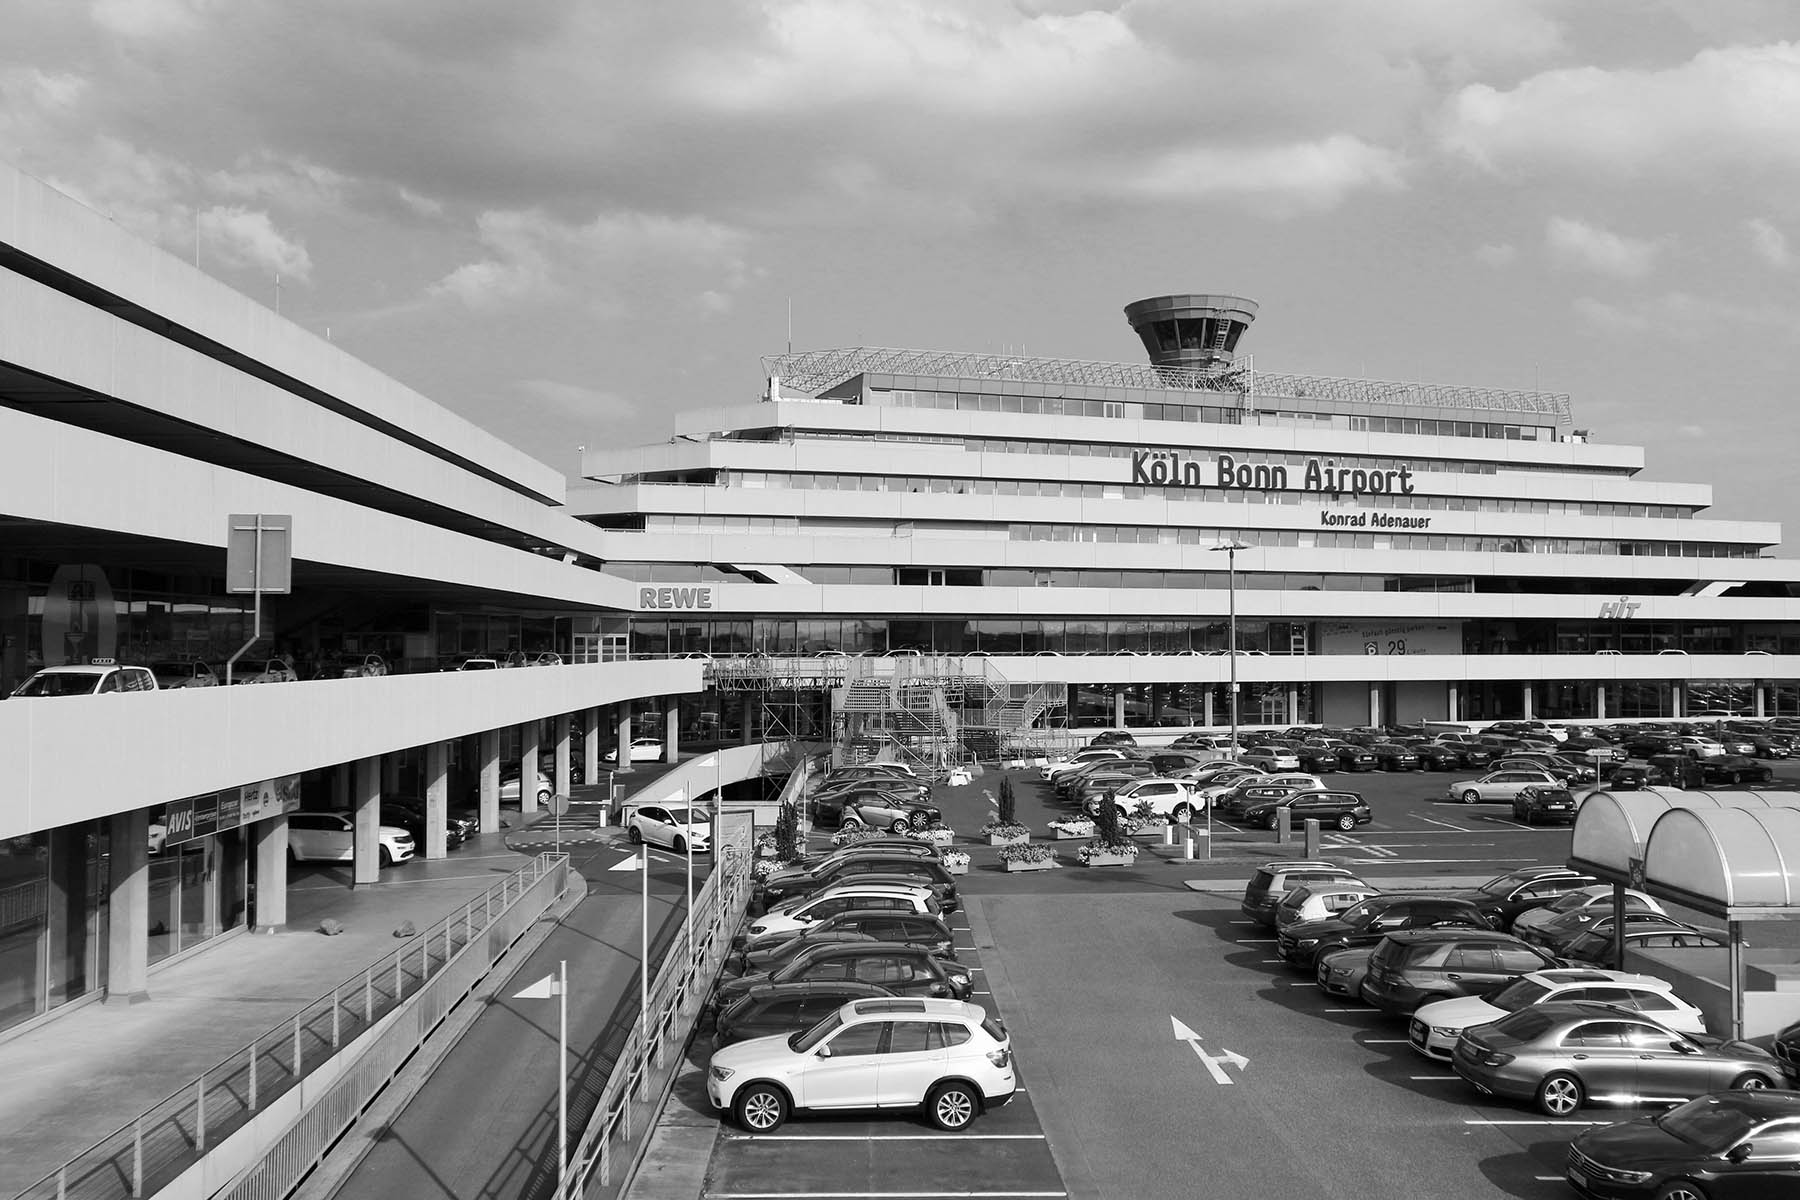 Cologne Bonn Airport. The first terminal was opened in 1970 and designed by the architect Paul Schneider von Esleben (PSE).